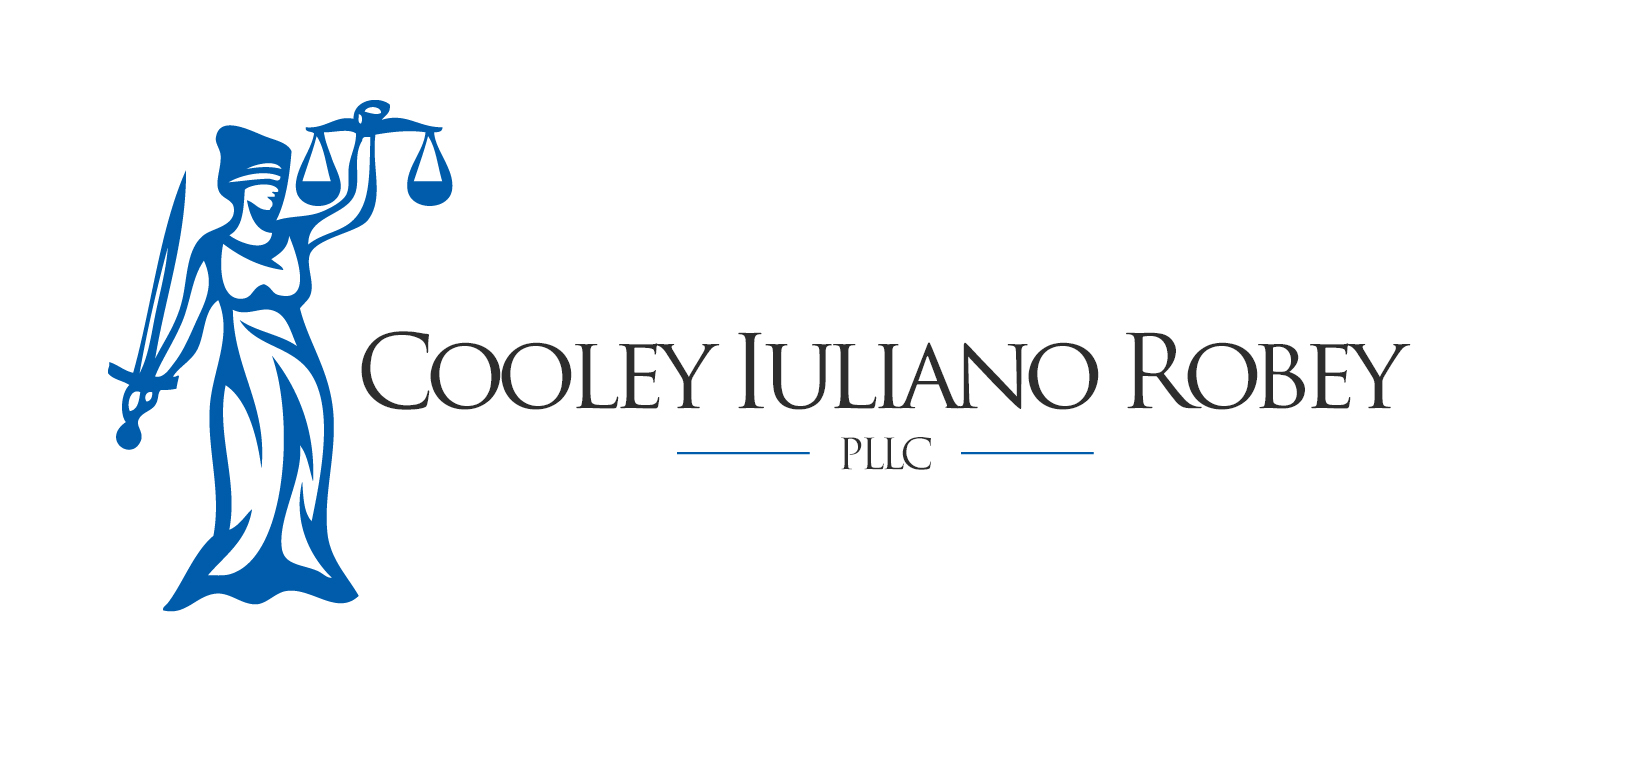 Cooley Iuliano Robey, PLLC